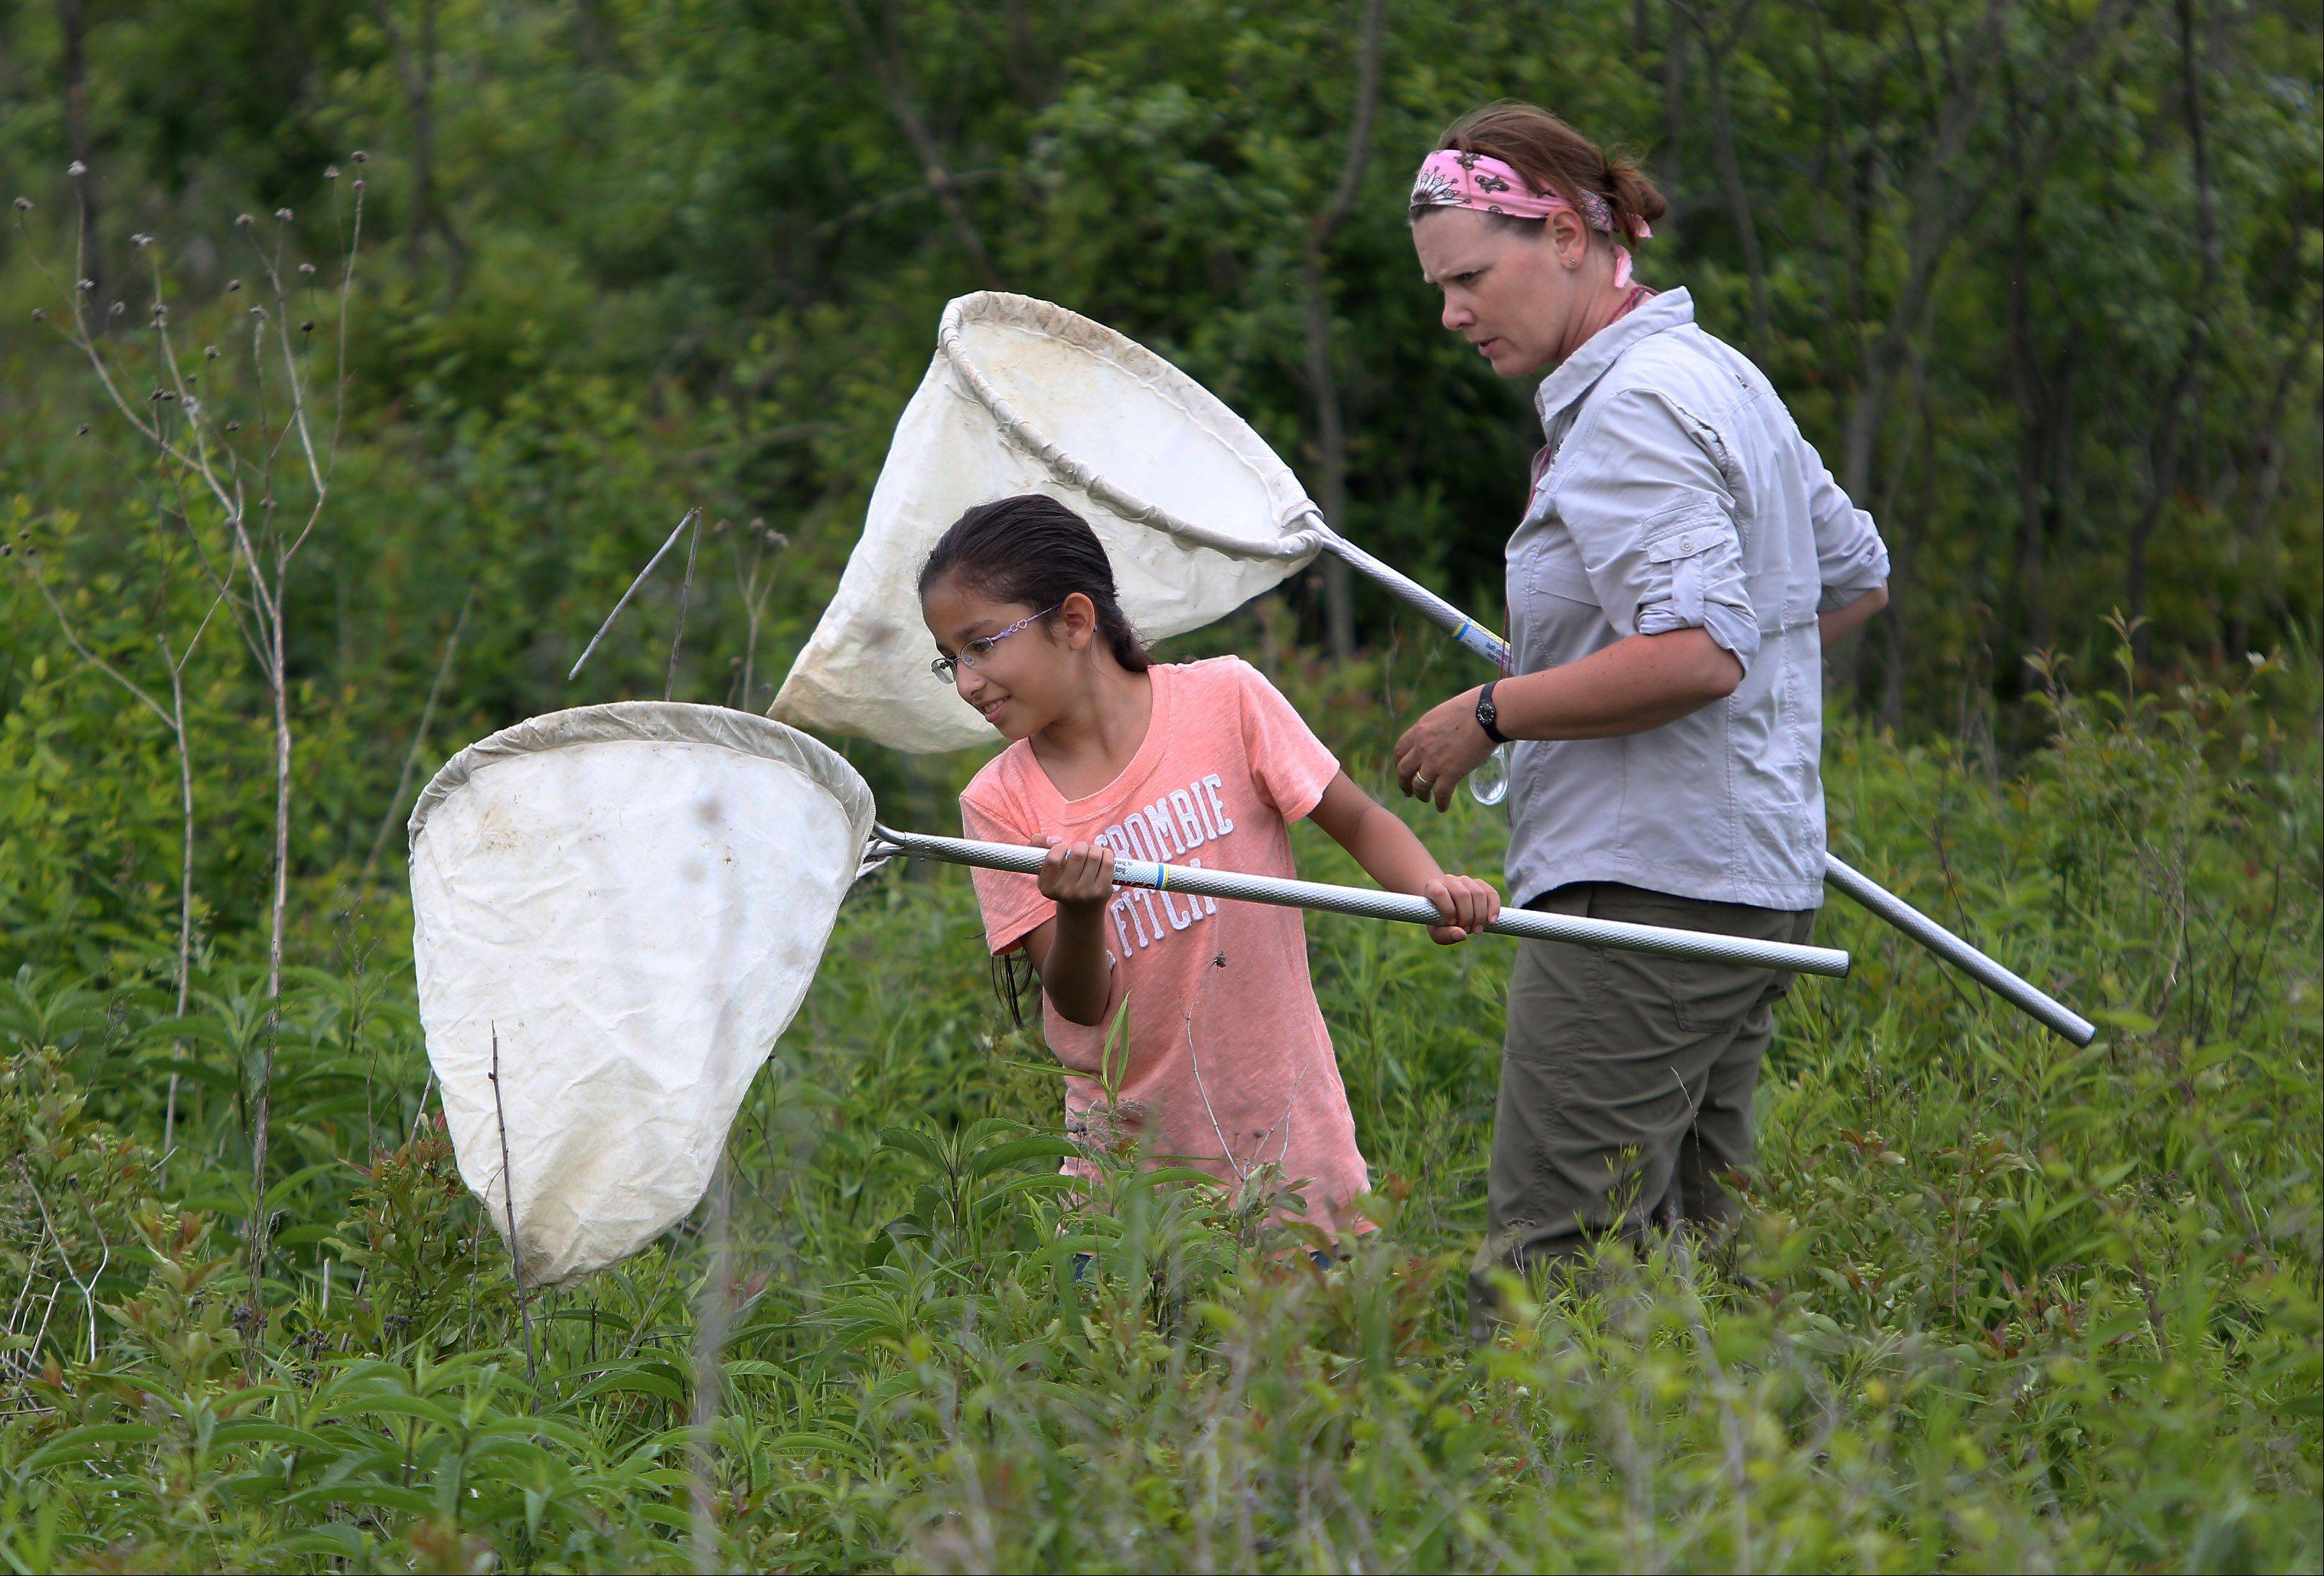 Brianna Ruiz, 9, of Waukegan, collects bugs with environmental educator Christine Blakely during Lake County Forest Preserve's Kids Nature Funfest Sunday at the Greenbelt Cultural Center in North Chicago. Kids ages 4-12 explored nature with hands-on activities and fun games.